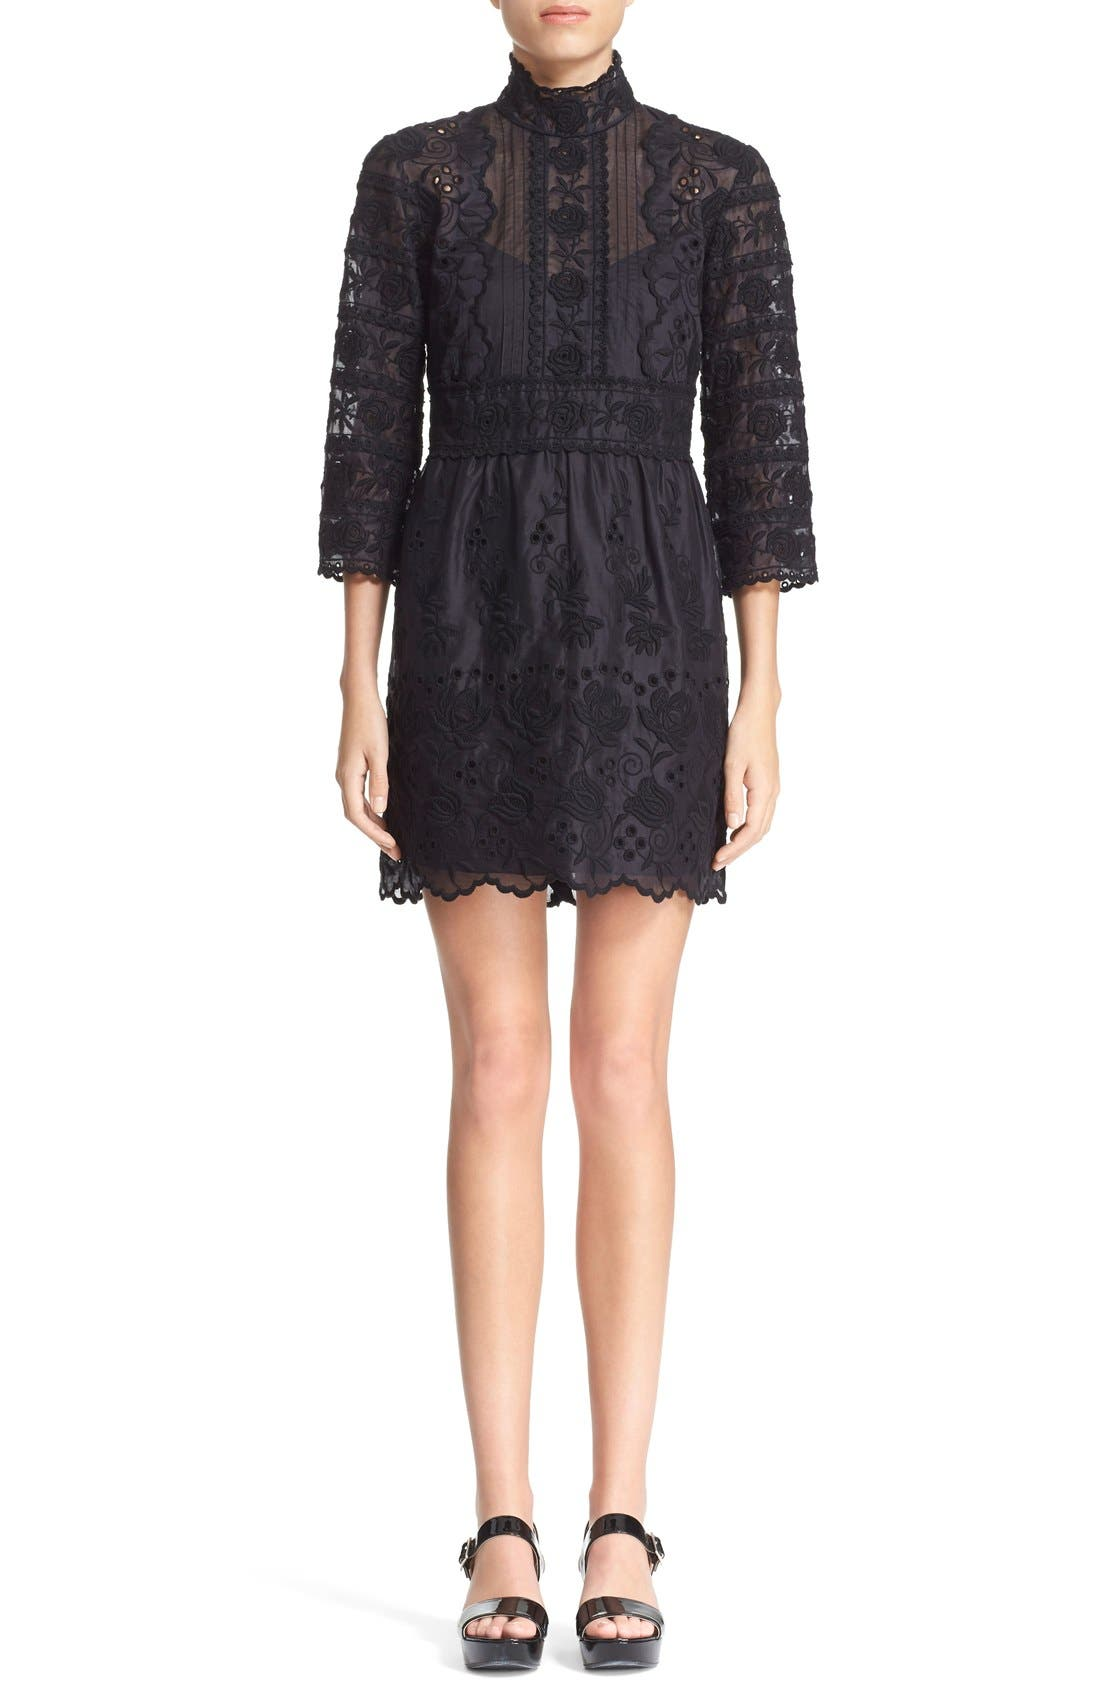 Alternate Image 1 Selected - MARC JACOBS Broderie Anglaise Cotton Voile Dress